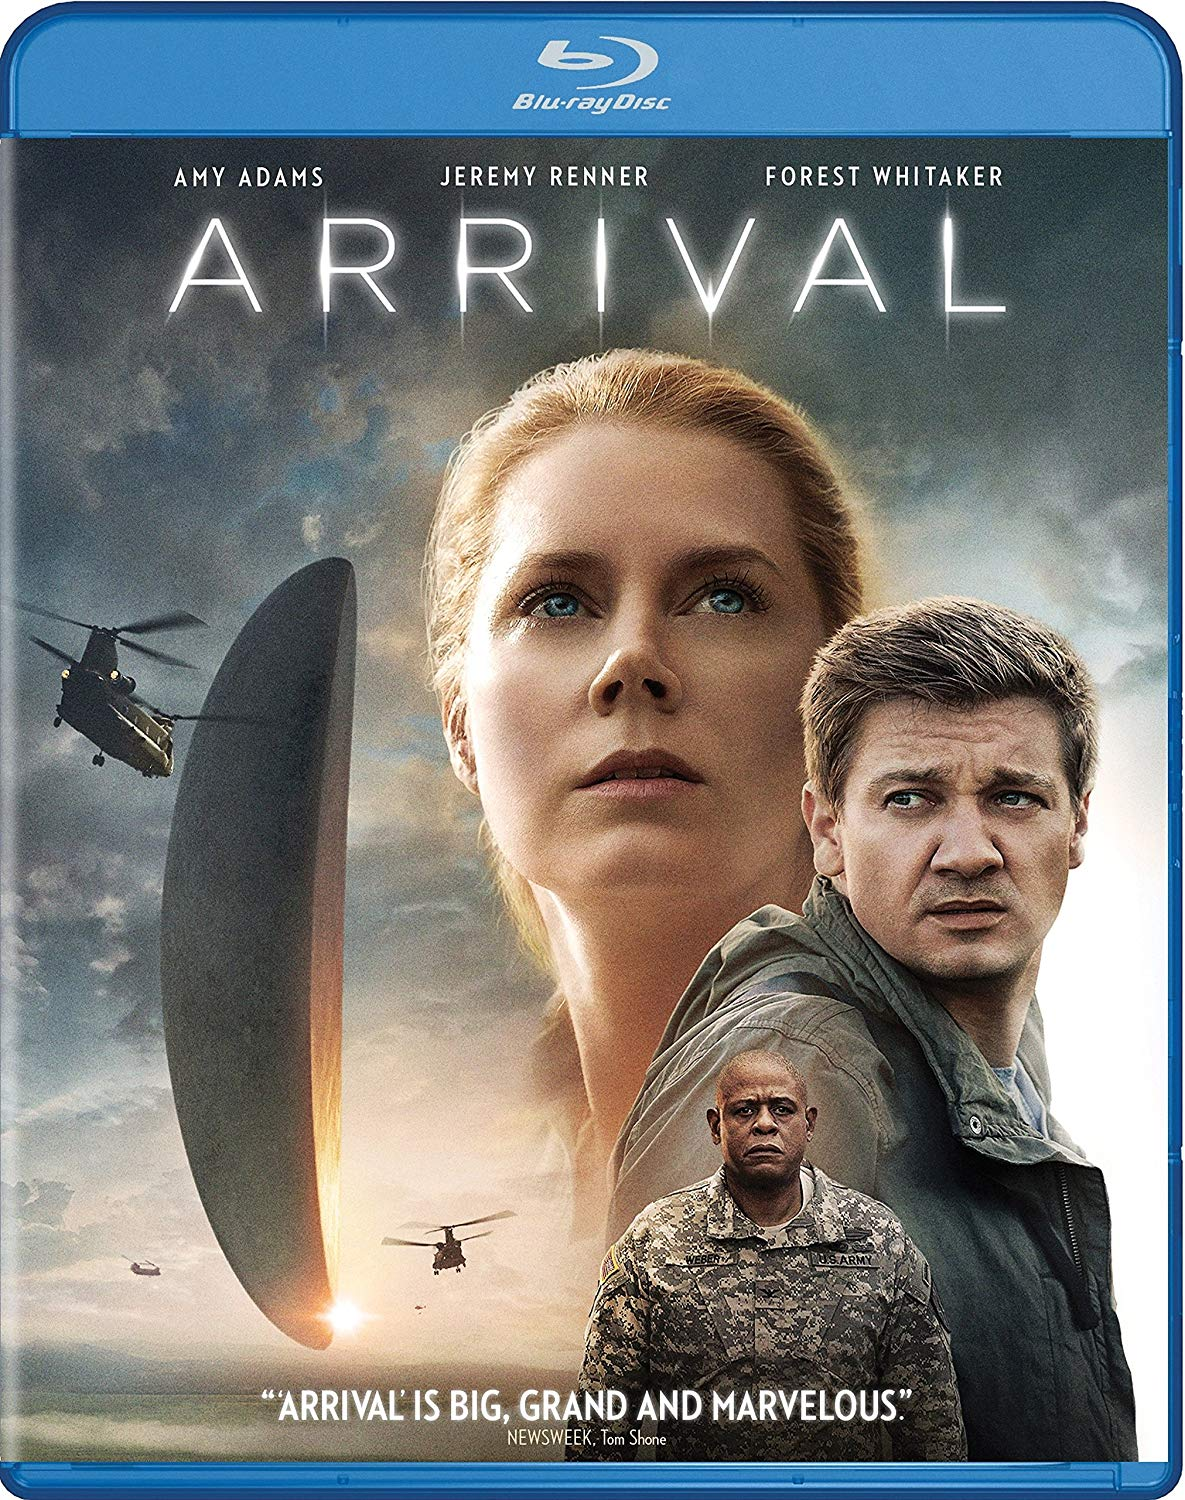 Arrival by Paramount